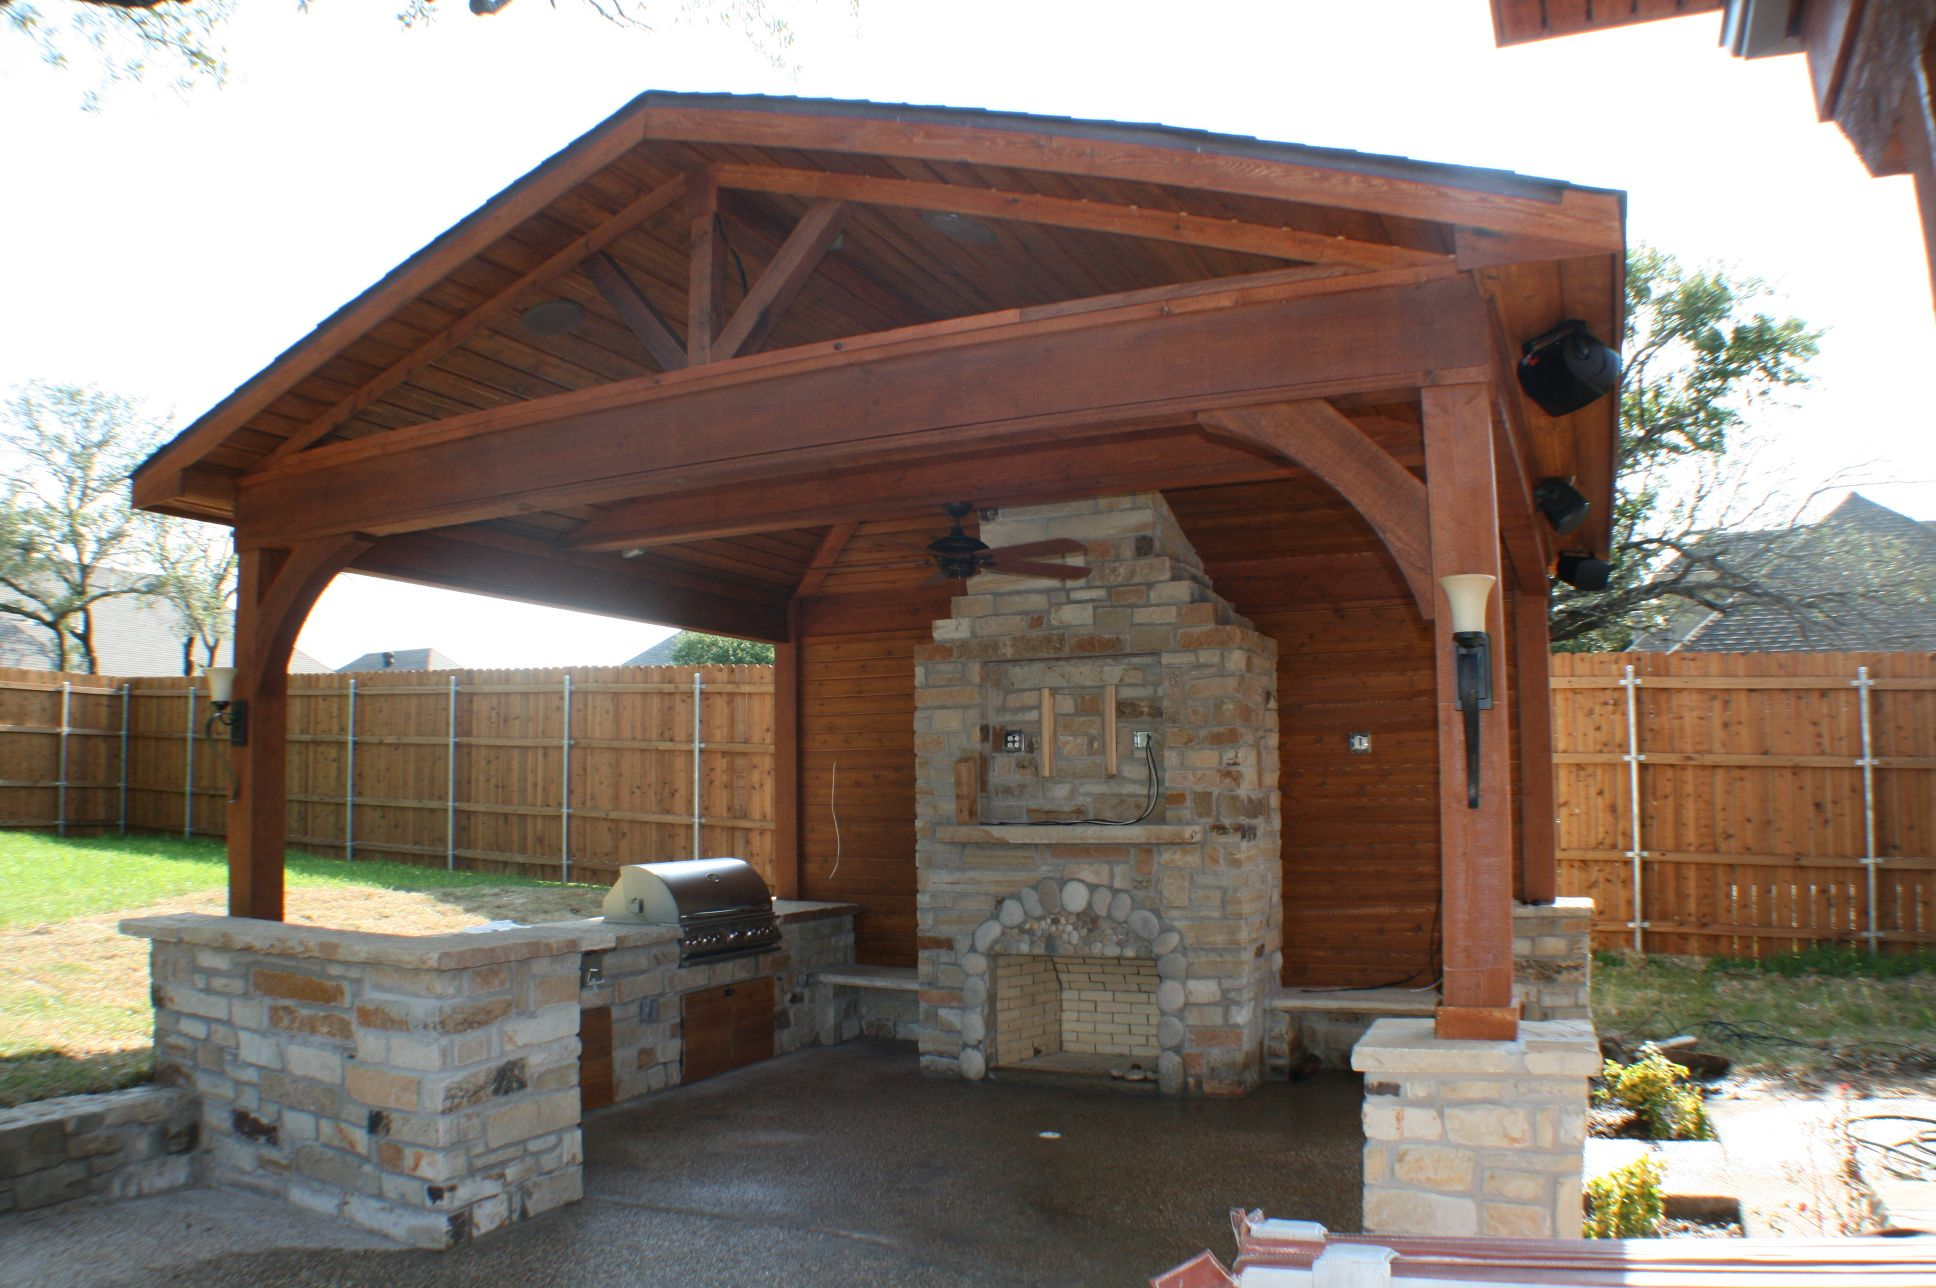 patio covers rustic outdoor kitchen designs | For the purposes of this short article, it is this style ...